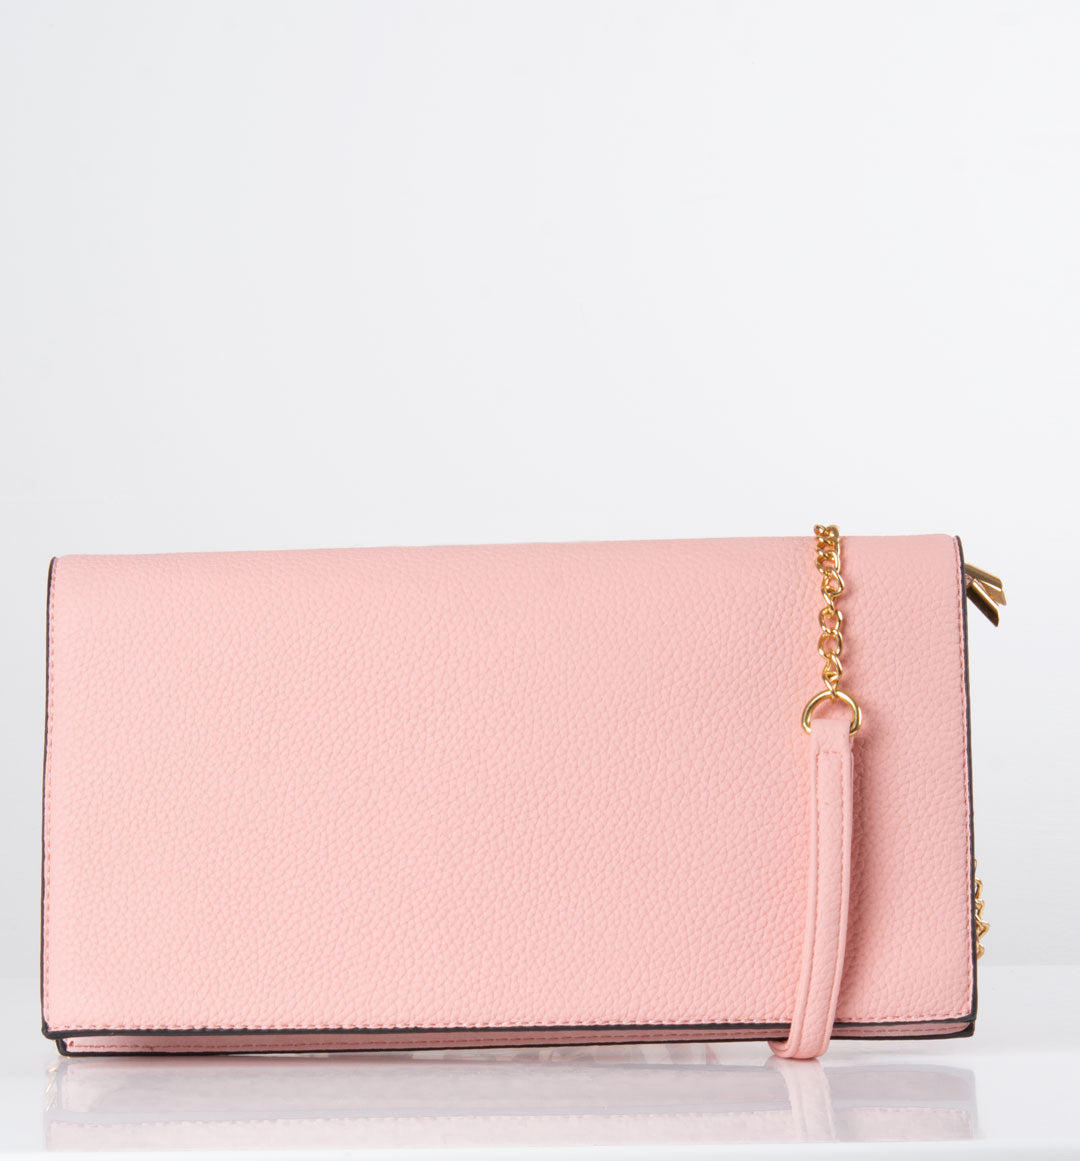 an image showing a pink shoulder bag